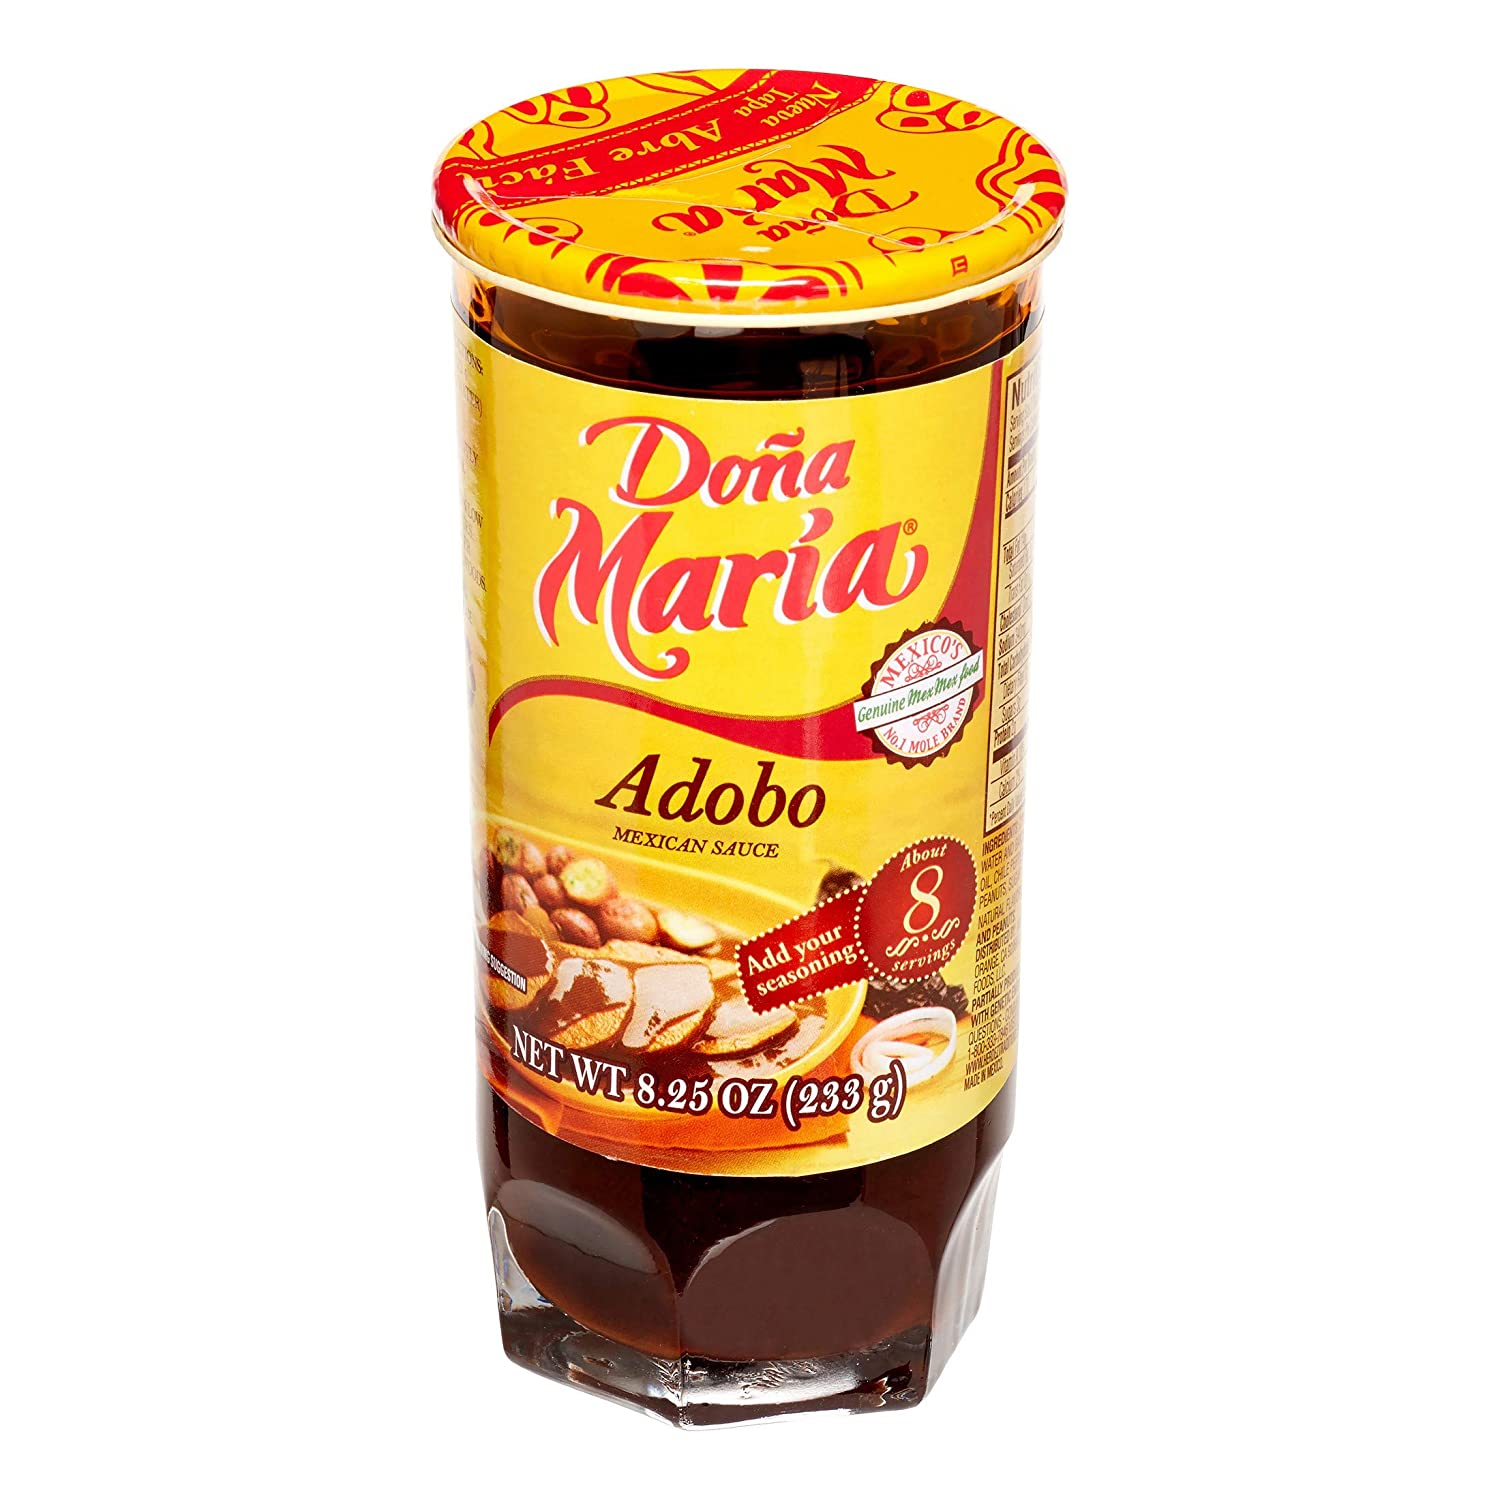 Dona Maria Adobo Mexican Sauce 8.25oz Imported from Mexico (2 Pack)